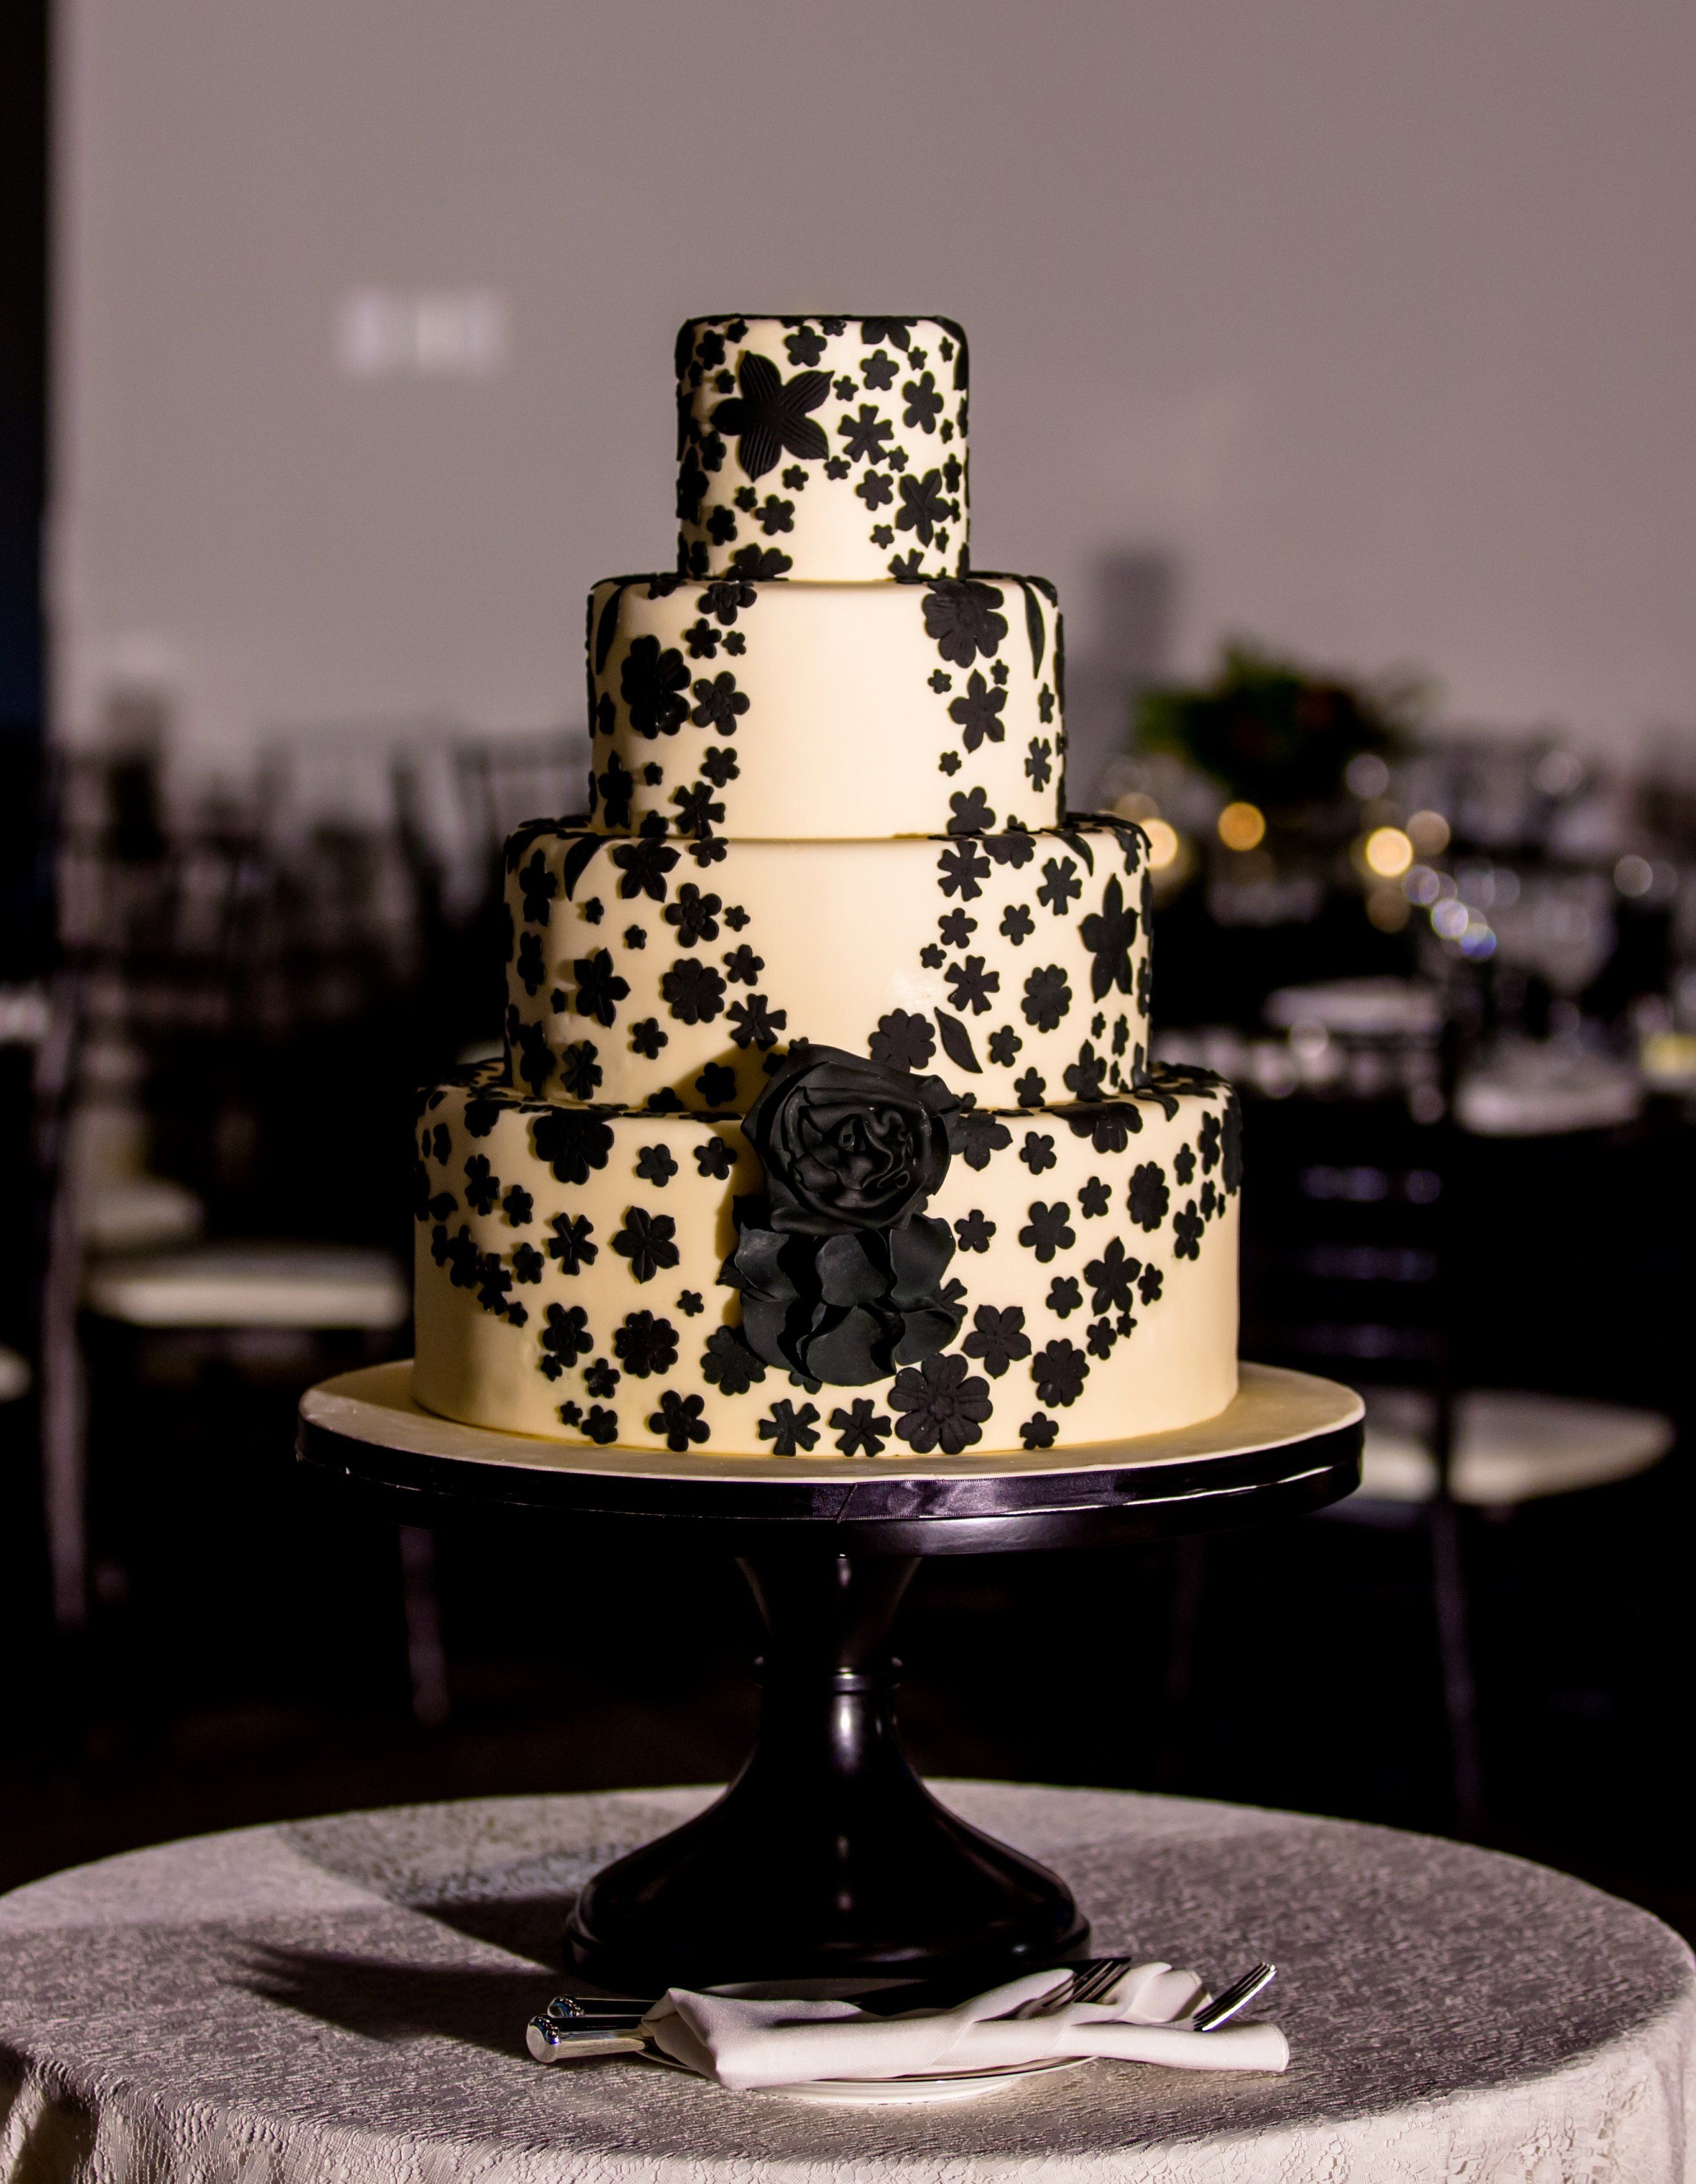 Amy Beck Cake Design - Chicago, IL - Black flowers, lace inspired. #amybeckcakedesign photo by Victoria Sprung Photography